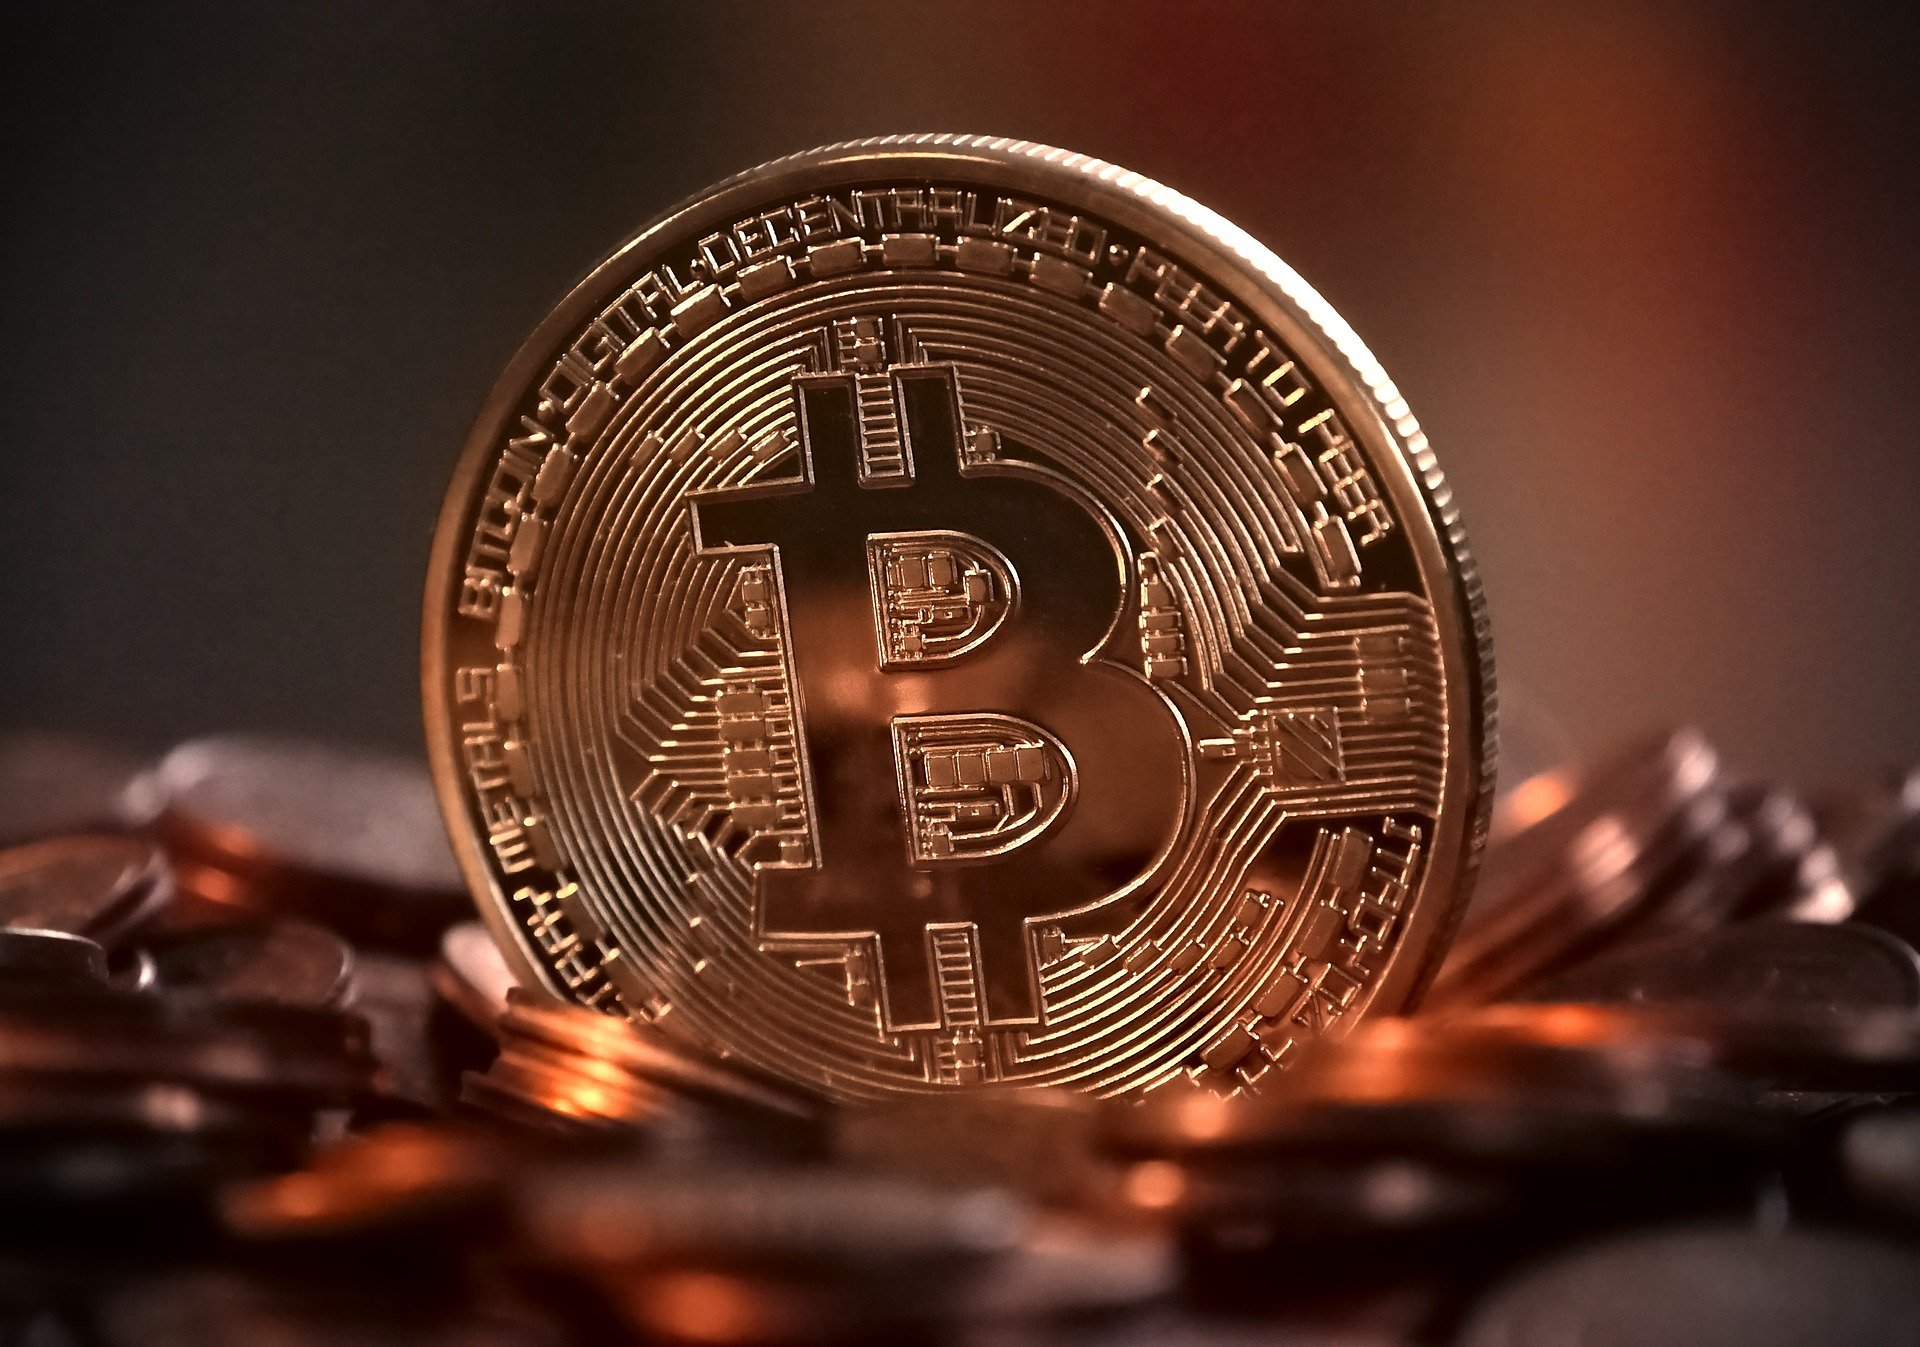 Public Firms, Trusts And ETPs Gulp About 7% Of The Total Bitcoin Value.